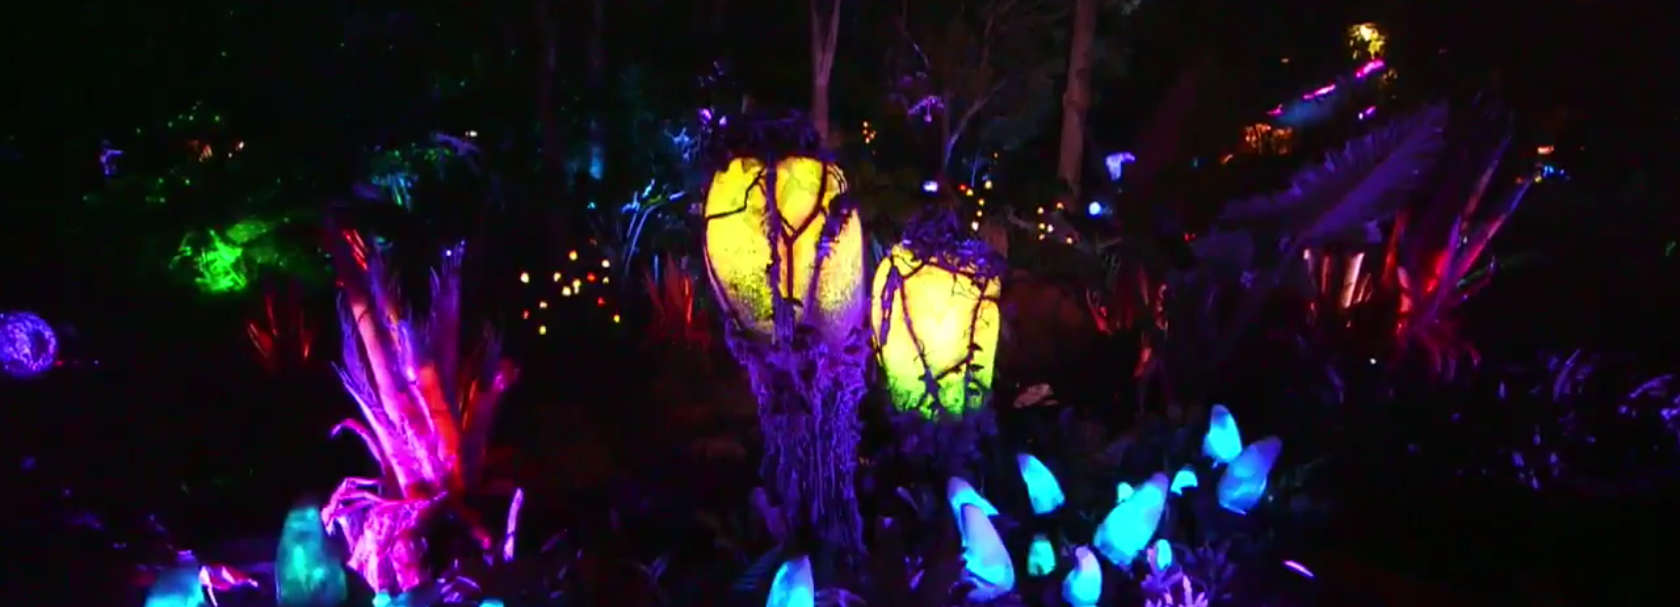 Native Bioluminescent Plants Found Within Pandora